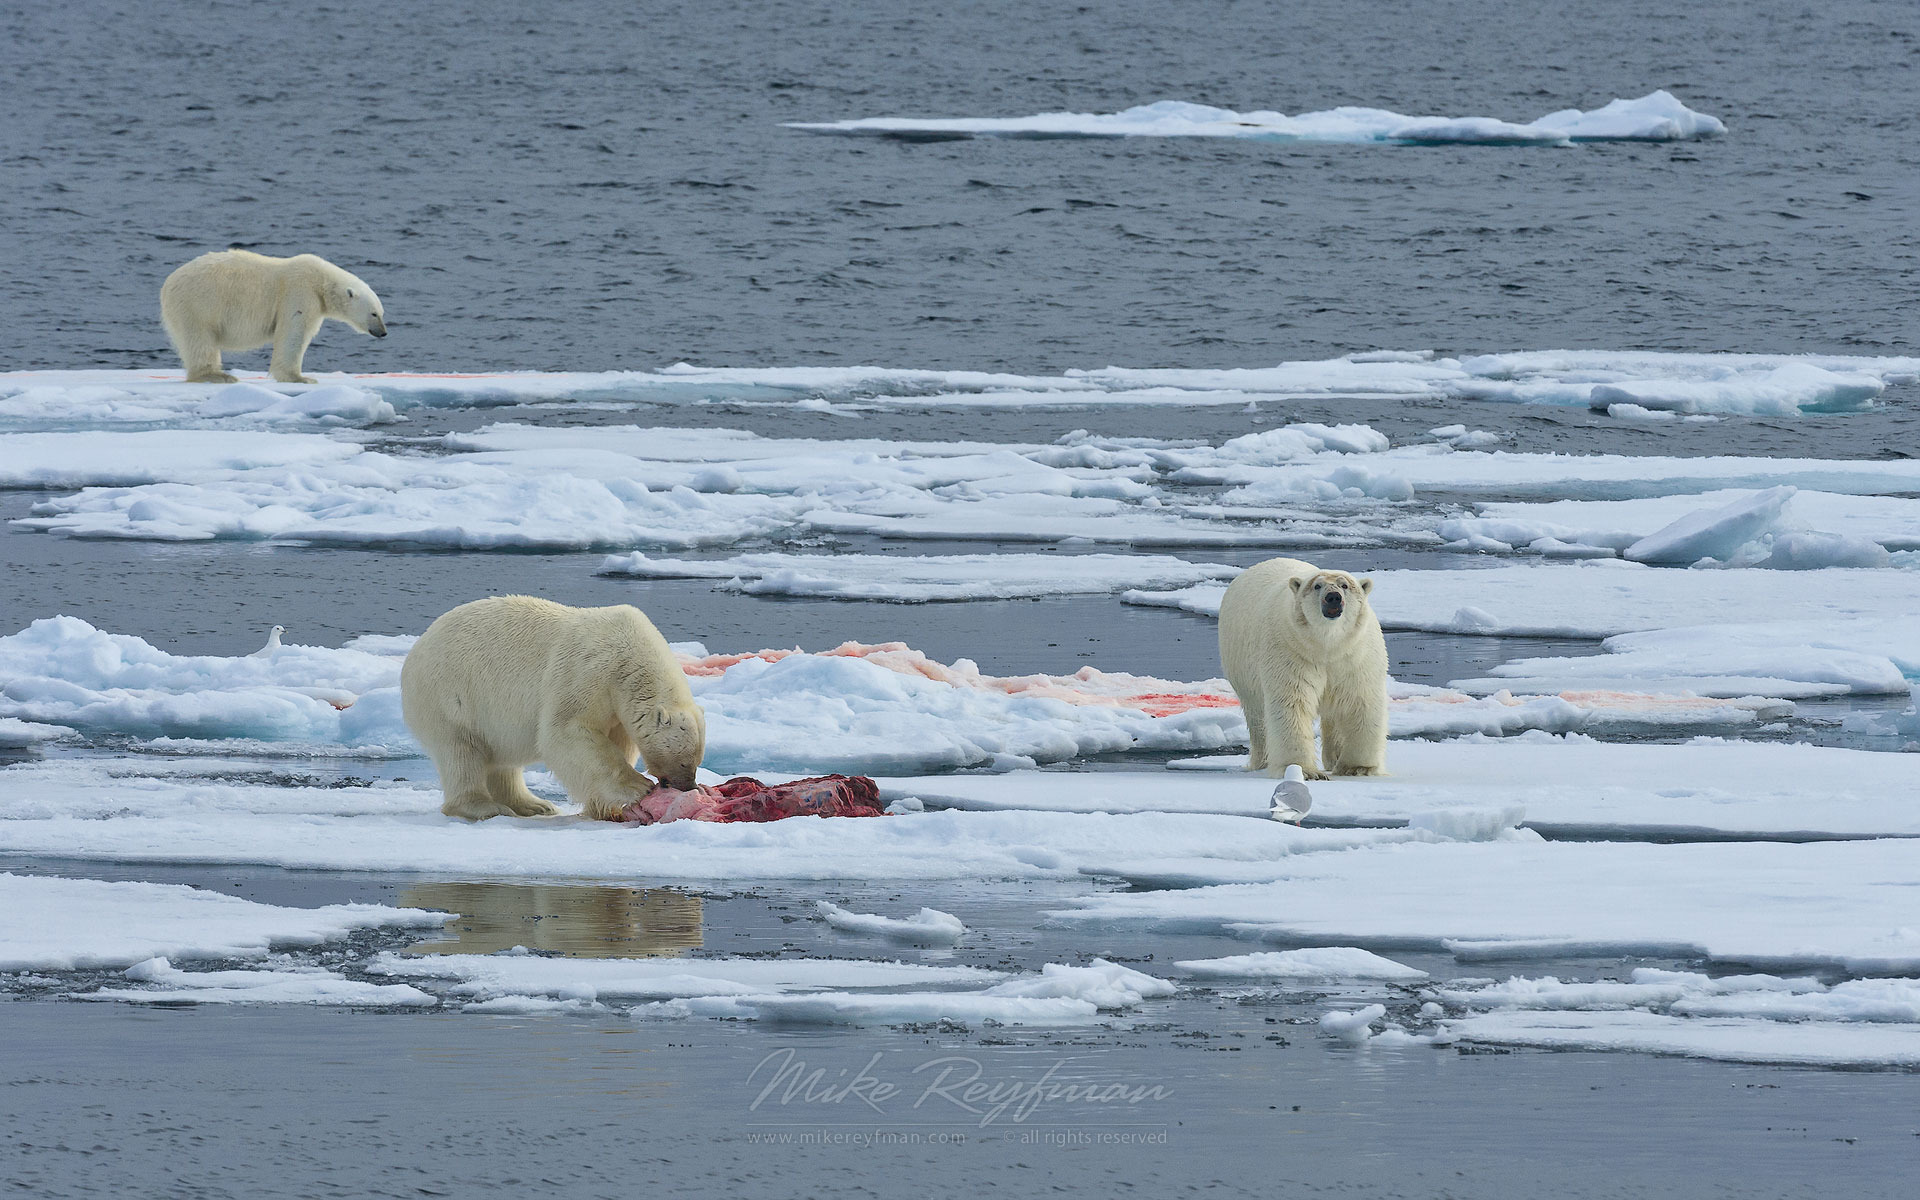 Polar bears with seal kill on an ice floe. Svalbard, Norway. 81st parallel North. - Polar-Bears-Svalbard-Spitsbergen-Norway - Mike Reyfman Photography